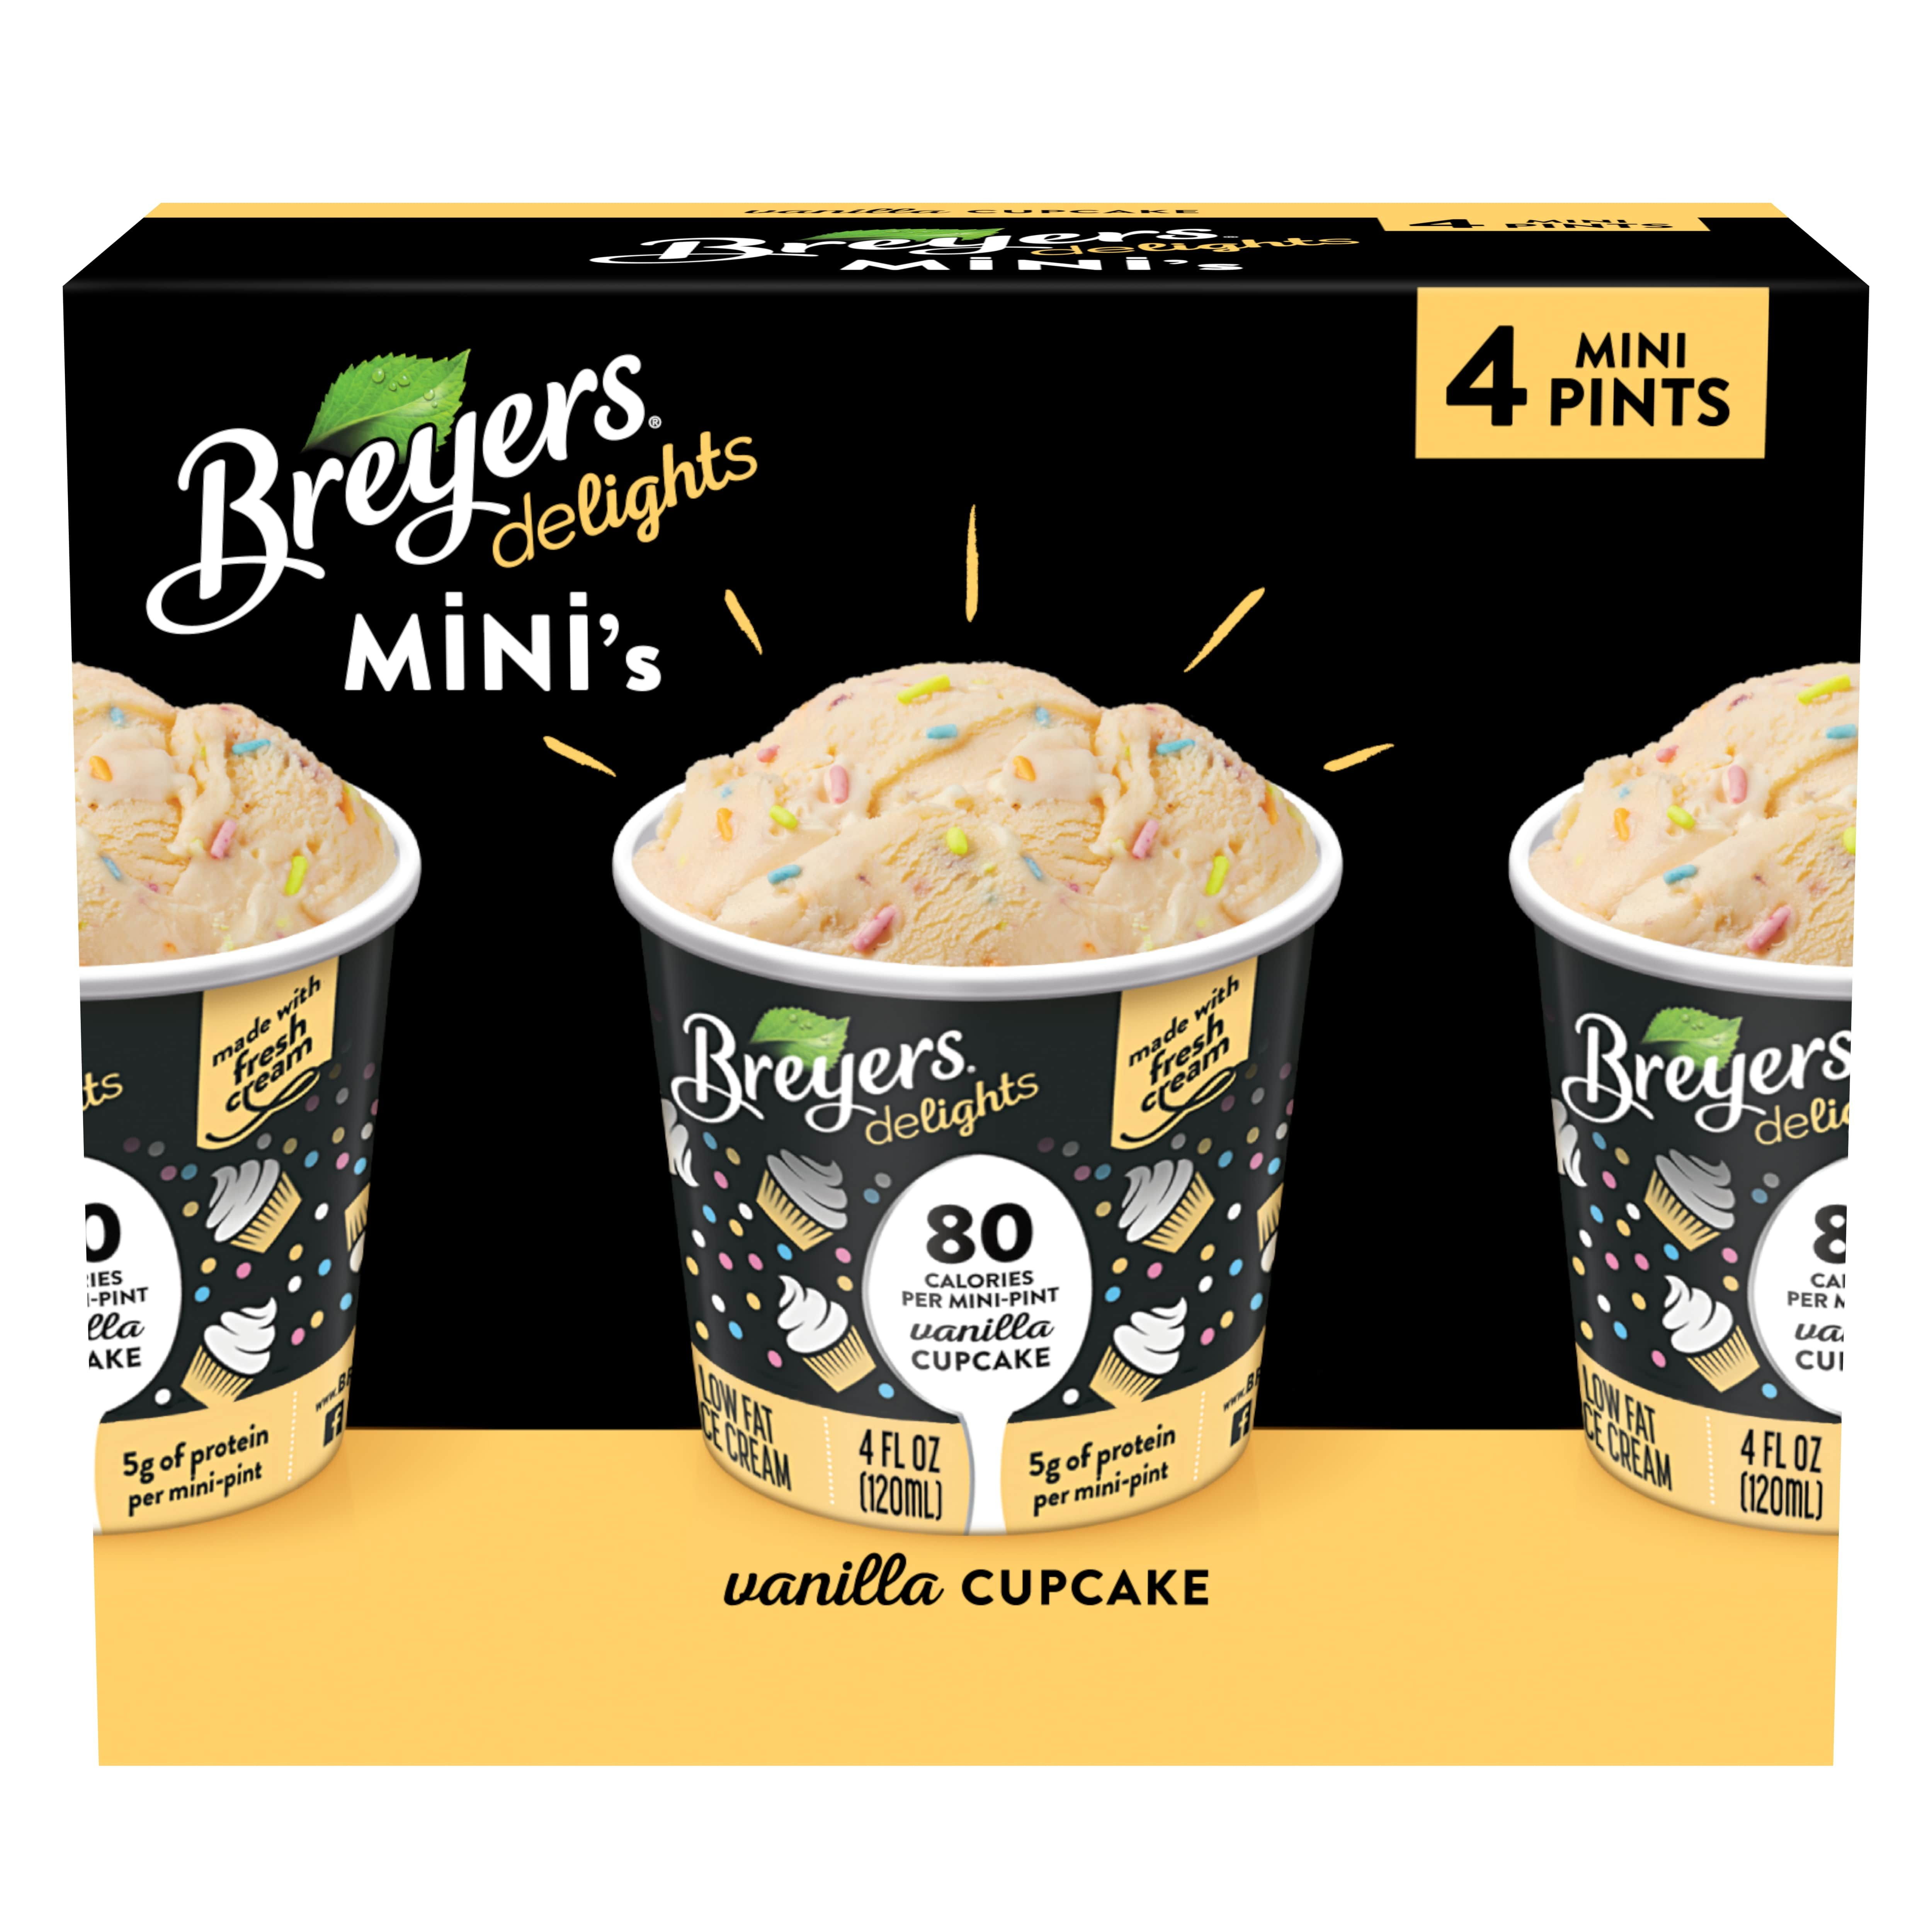 Breyers Now Sells 80 Calorie Mini Tubs Of Ice Cream That